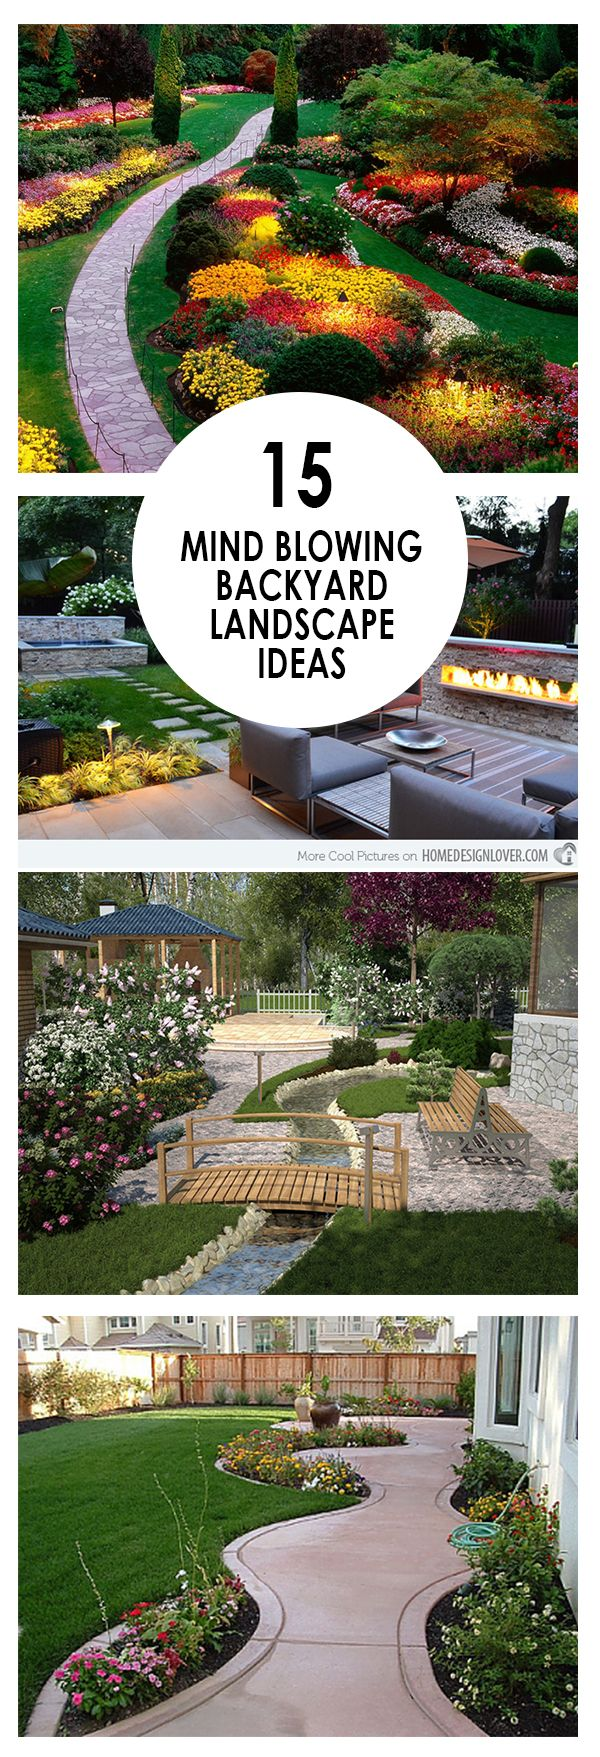 15 Mind Blowing Backyard Landscape Ideas. 25  beautiful Cheap landscaping ideas ideas on Pinterest